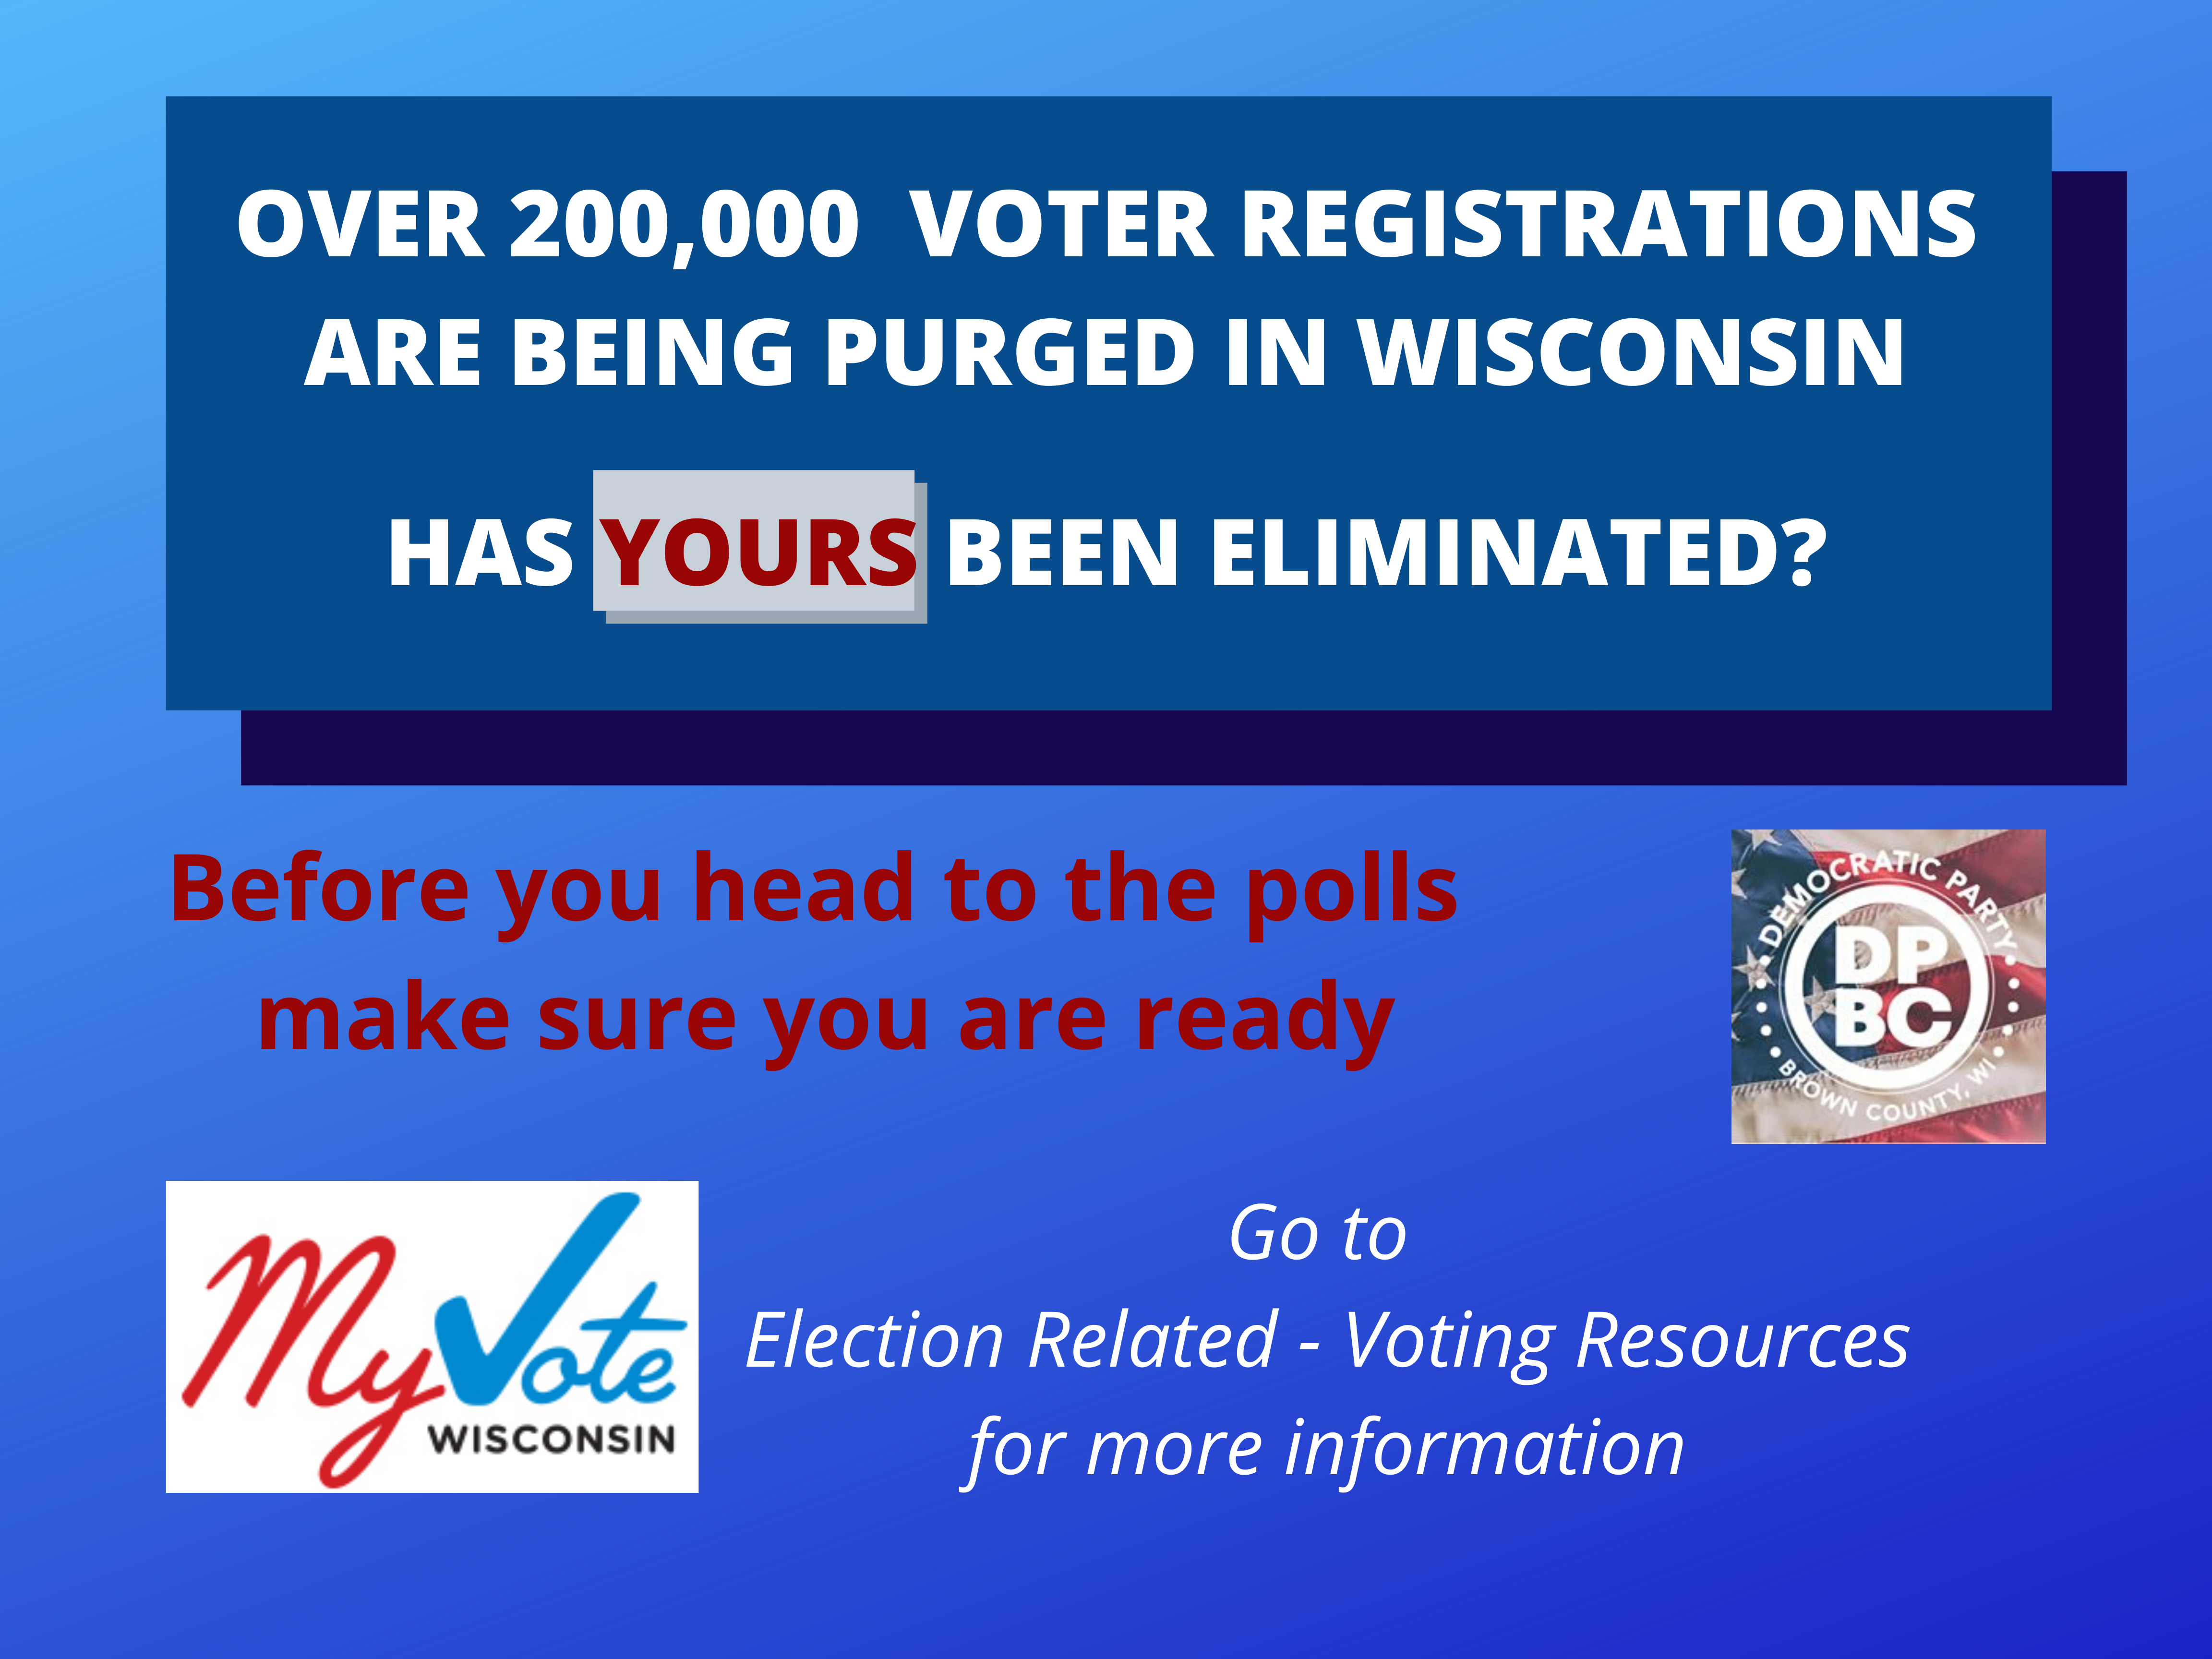 Over 200,00 voter registrations are being purged in WI. Has yours been eliminated?